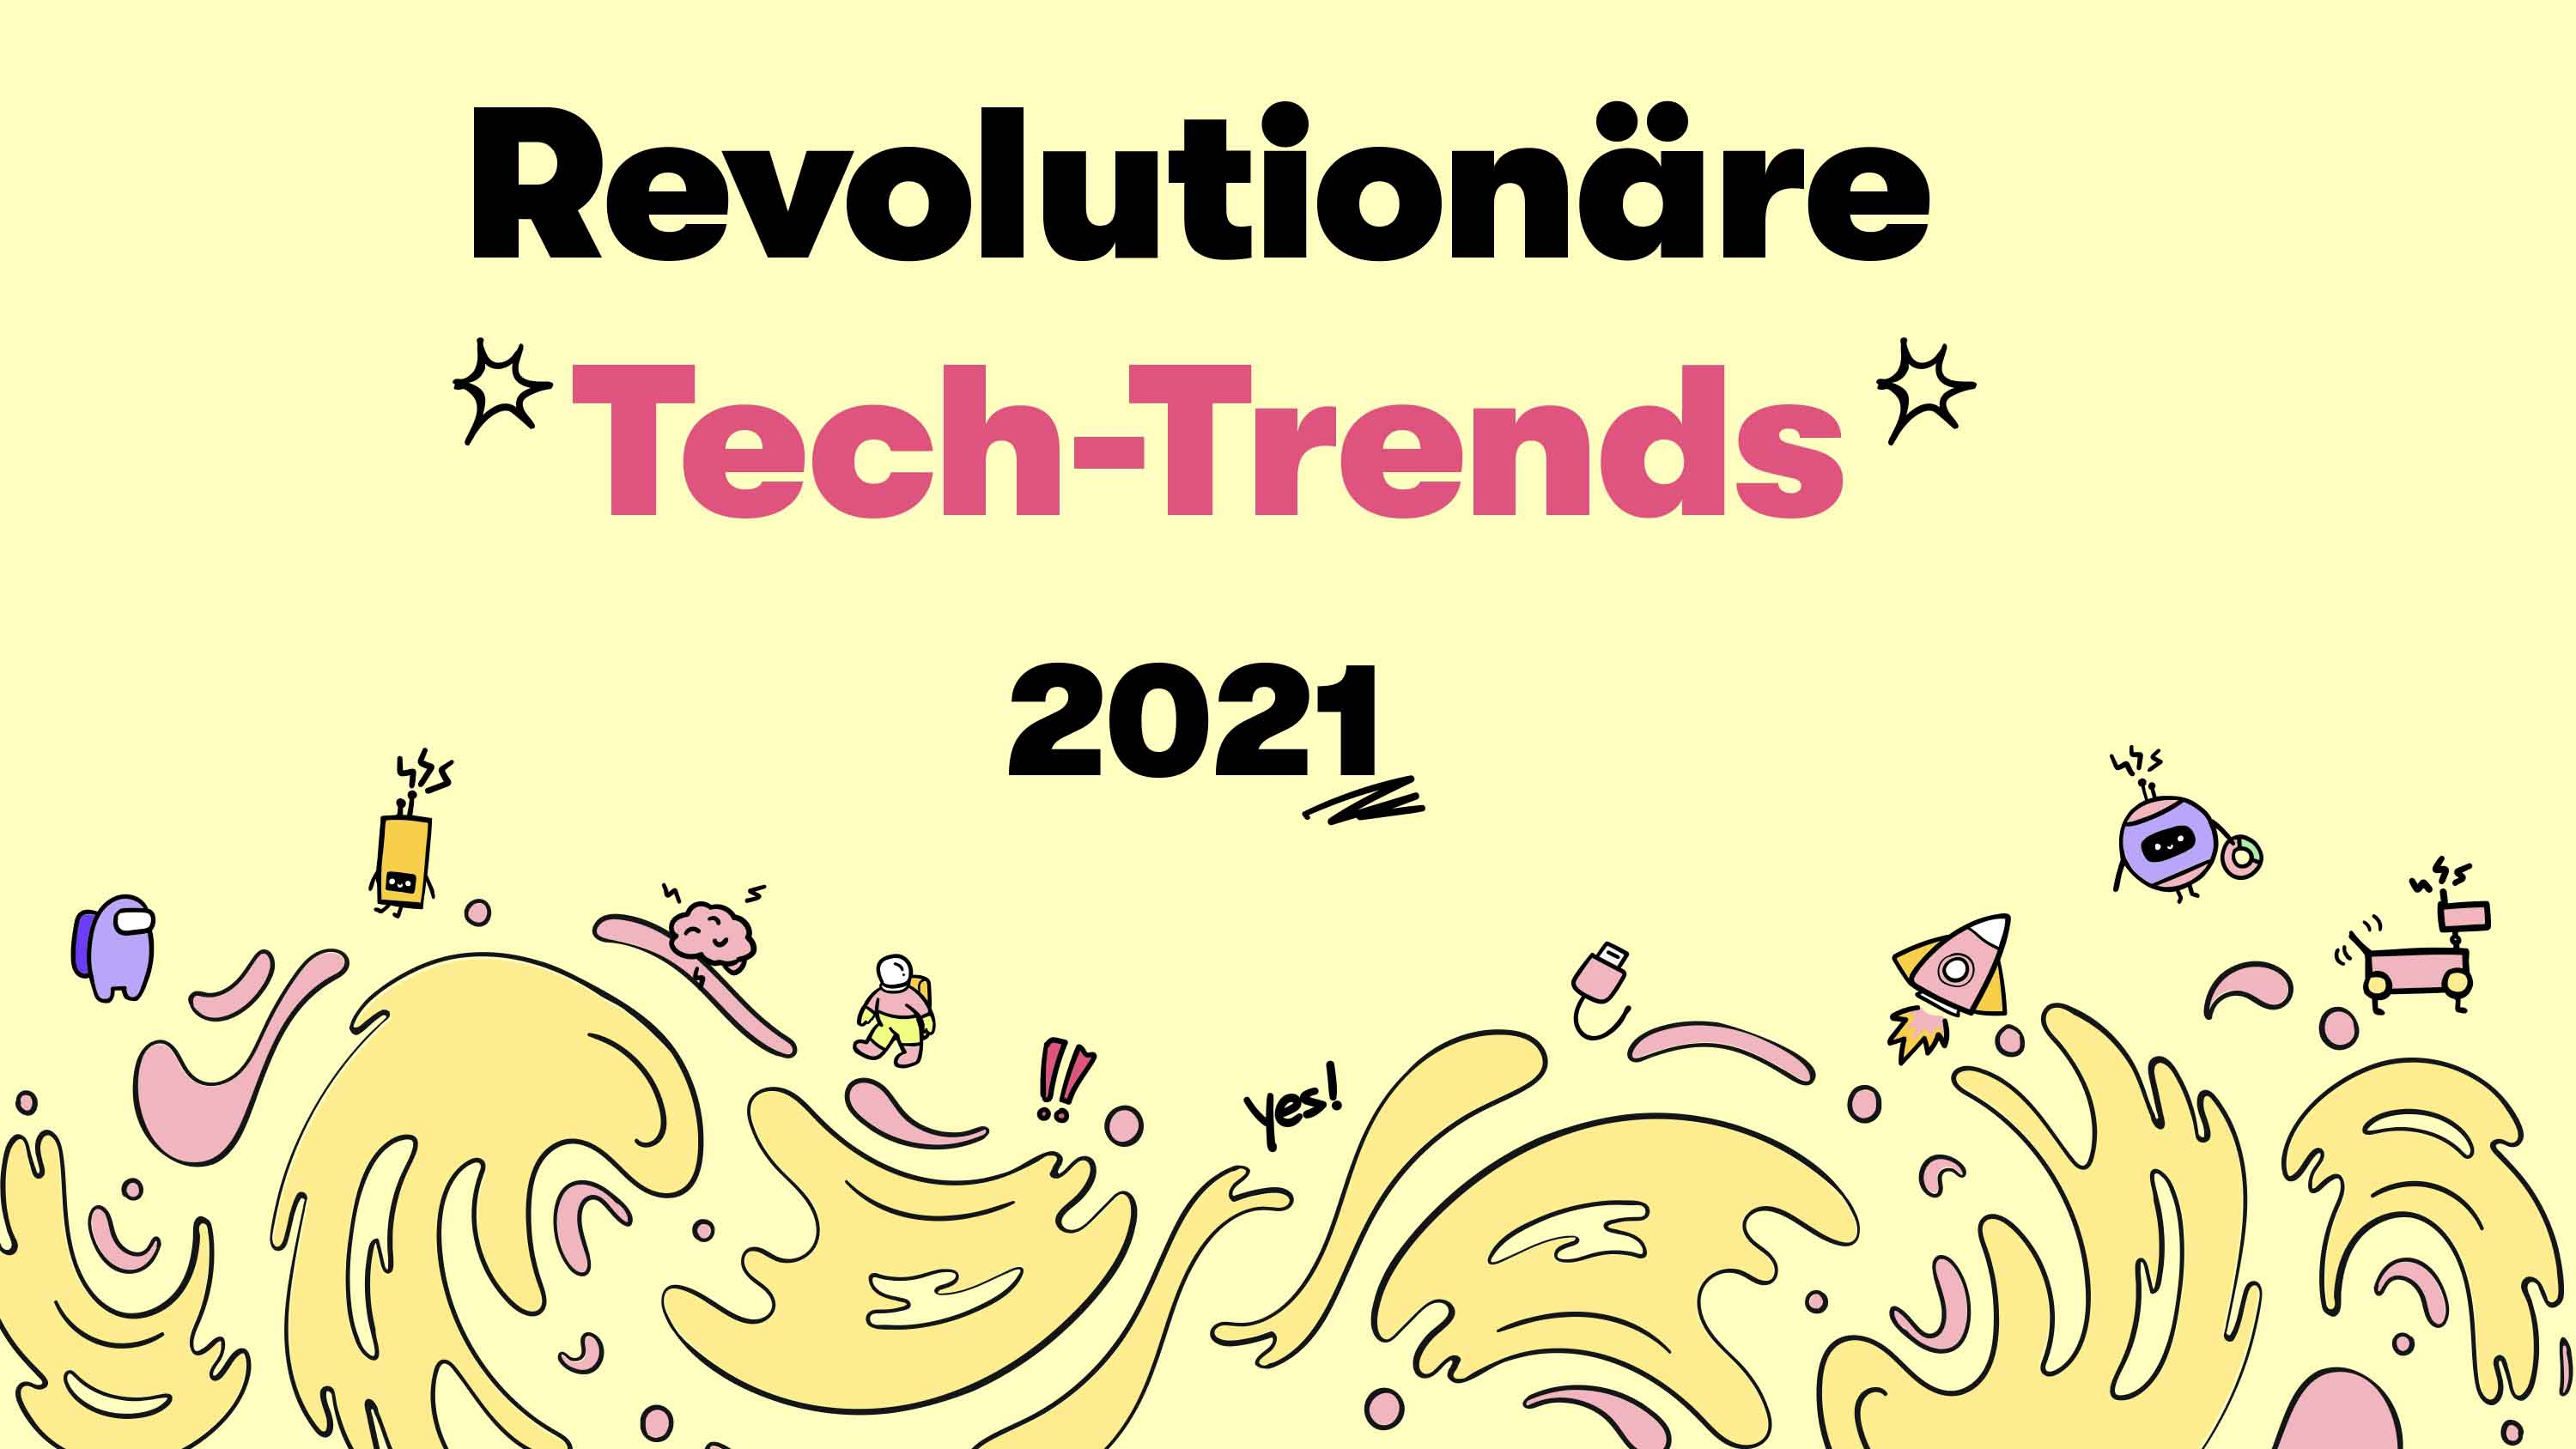 Tech-Trends 2021: Neun revolutionäre Systemsprenger, die du kennen solltest!